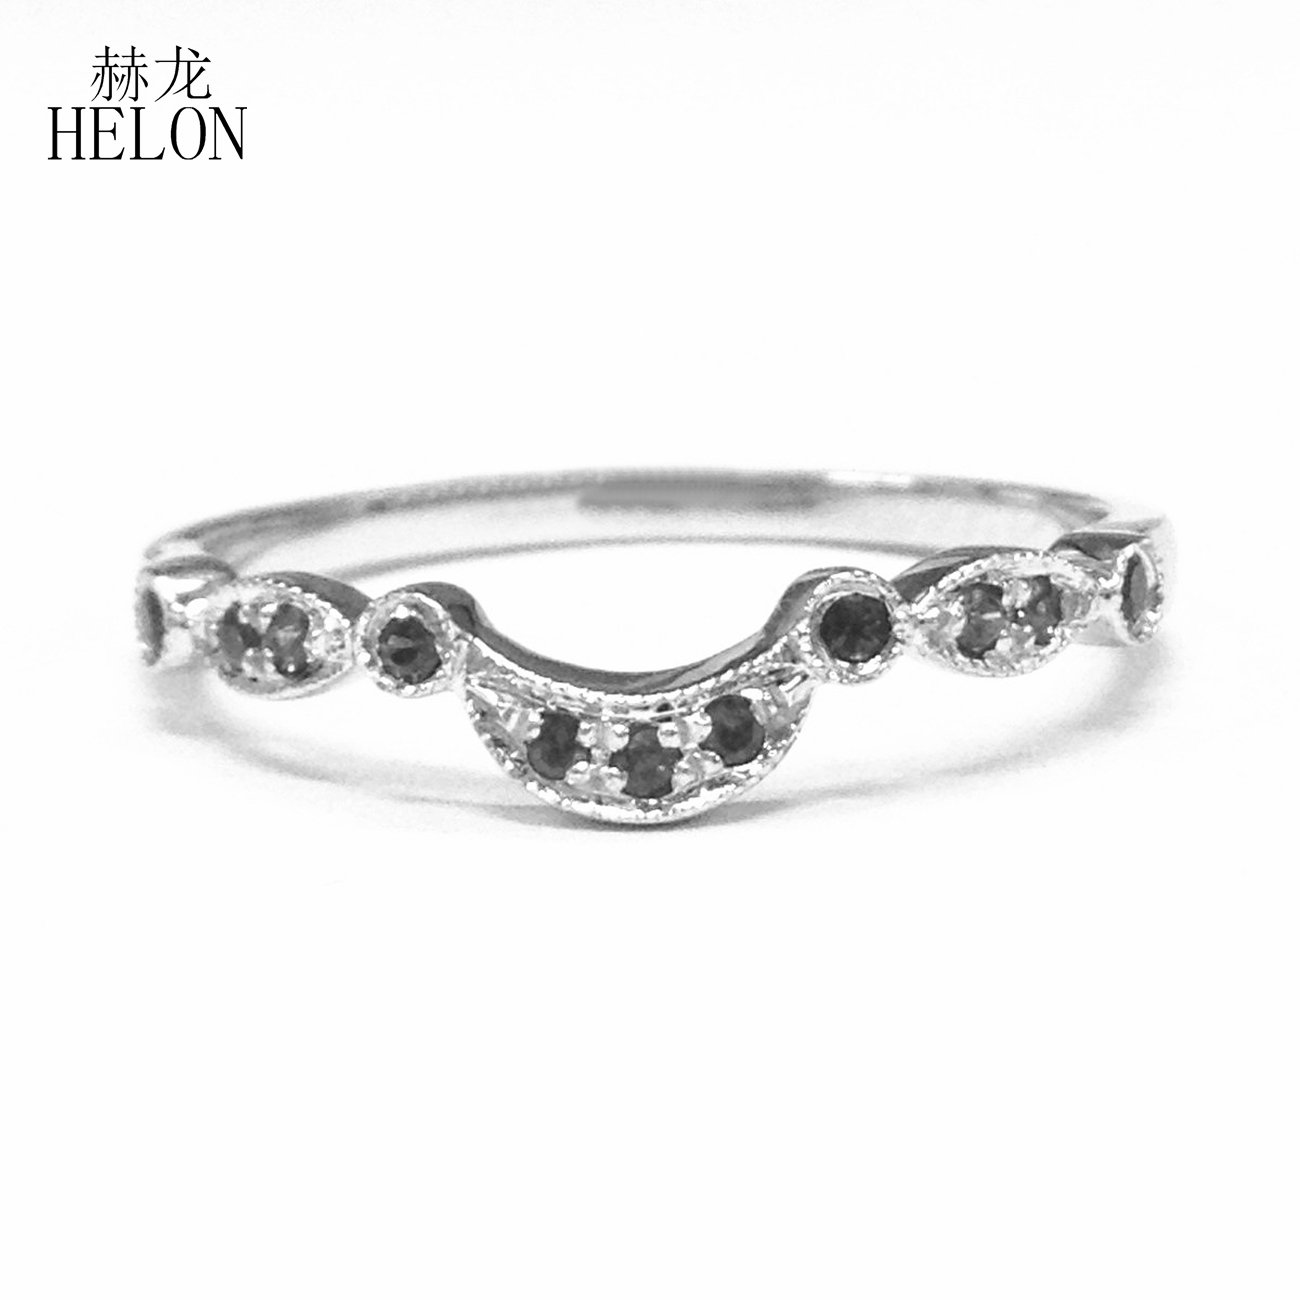 HELON Real 14k White Gold Art Deco Antique 0.15ct Natural black Sapphire Engagement Wedding Anniversary Ring Curved Fine JewelryHELON Real 14k White Gold Art Deco Antique 0.15ct Natural black Sapphire Engagement Wedding Anniversary Ring Curved Fine Jewelry